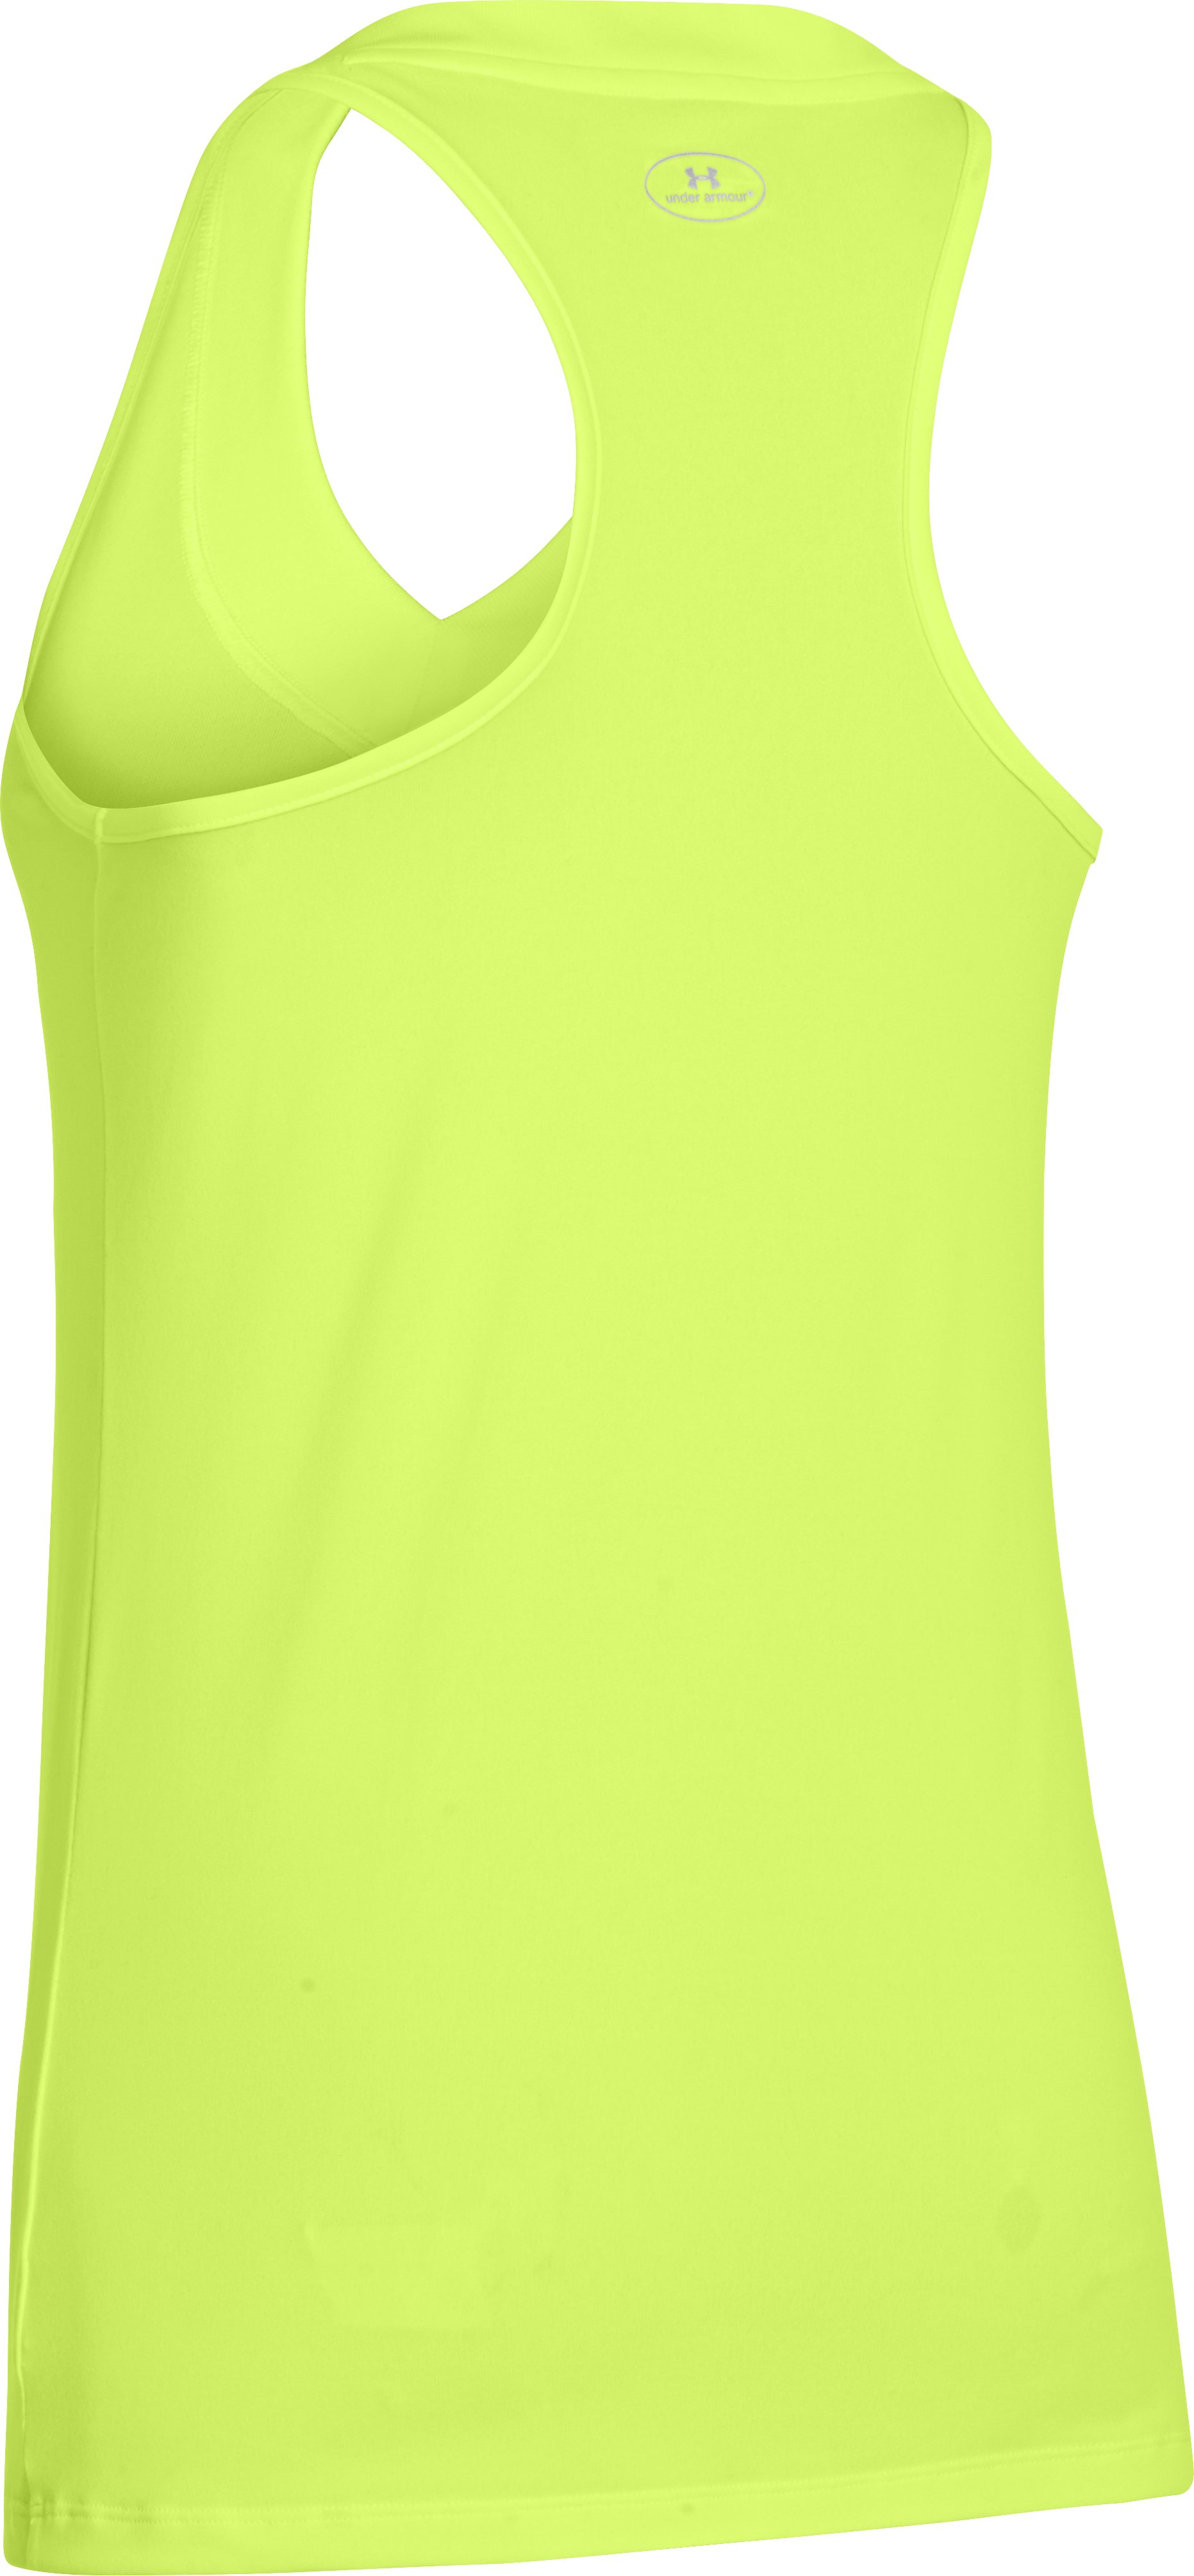 Women's UA Tech™ Sleeveless Tank, X-Ray